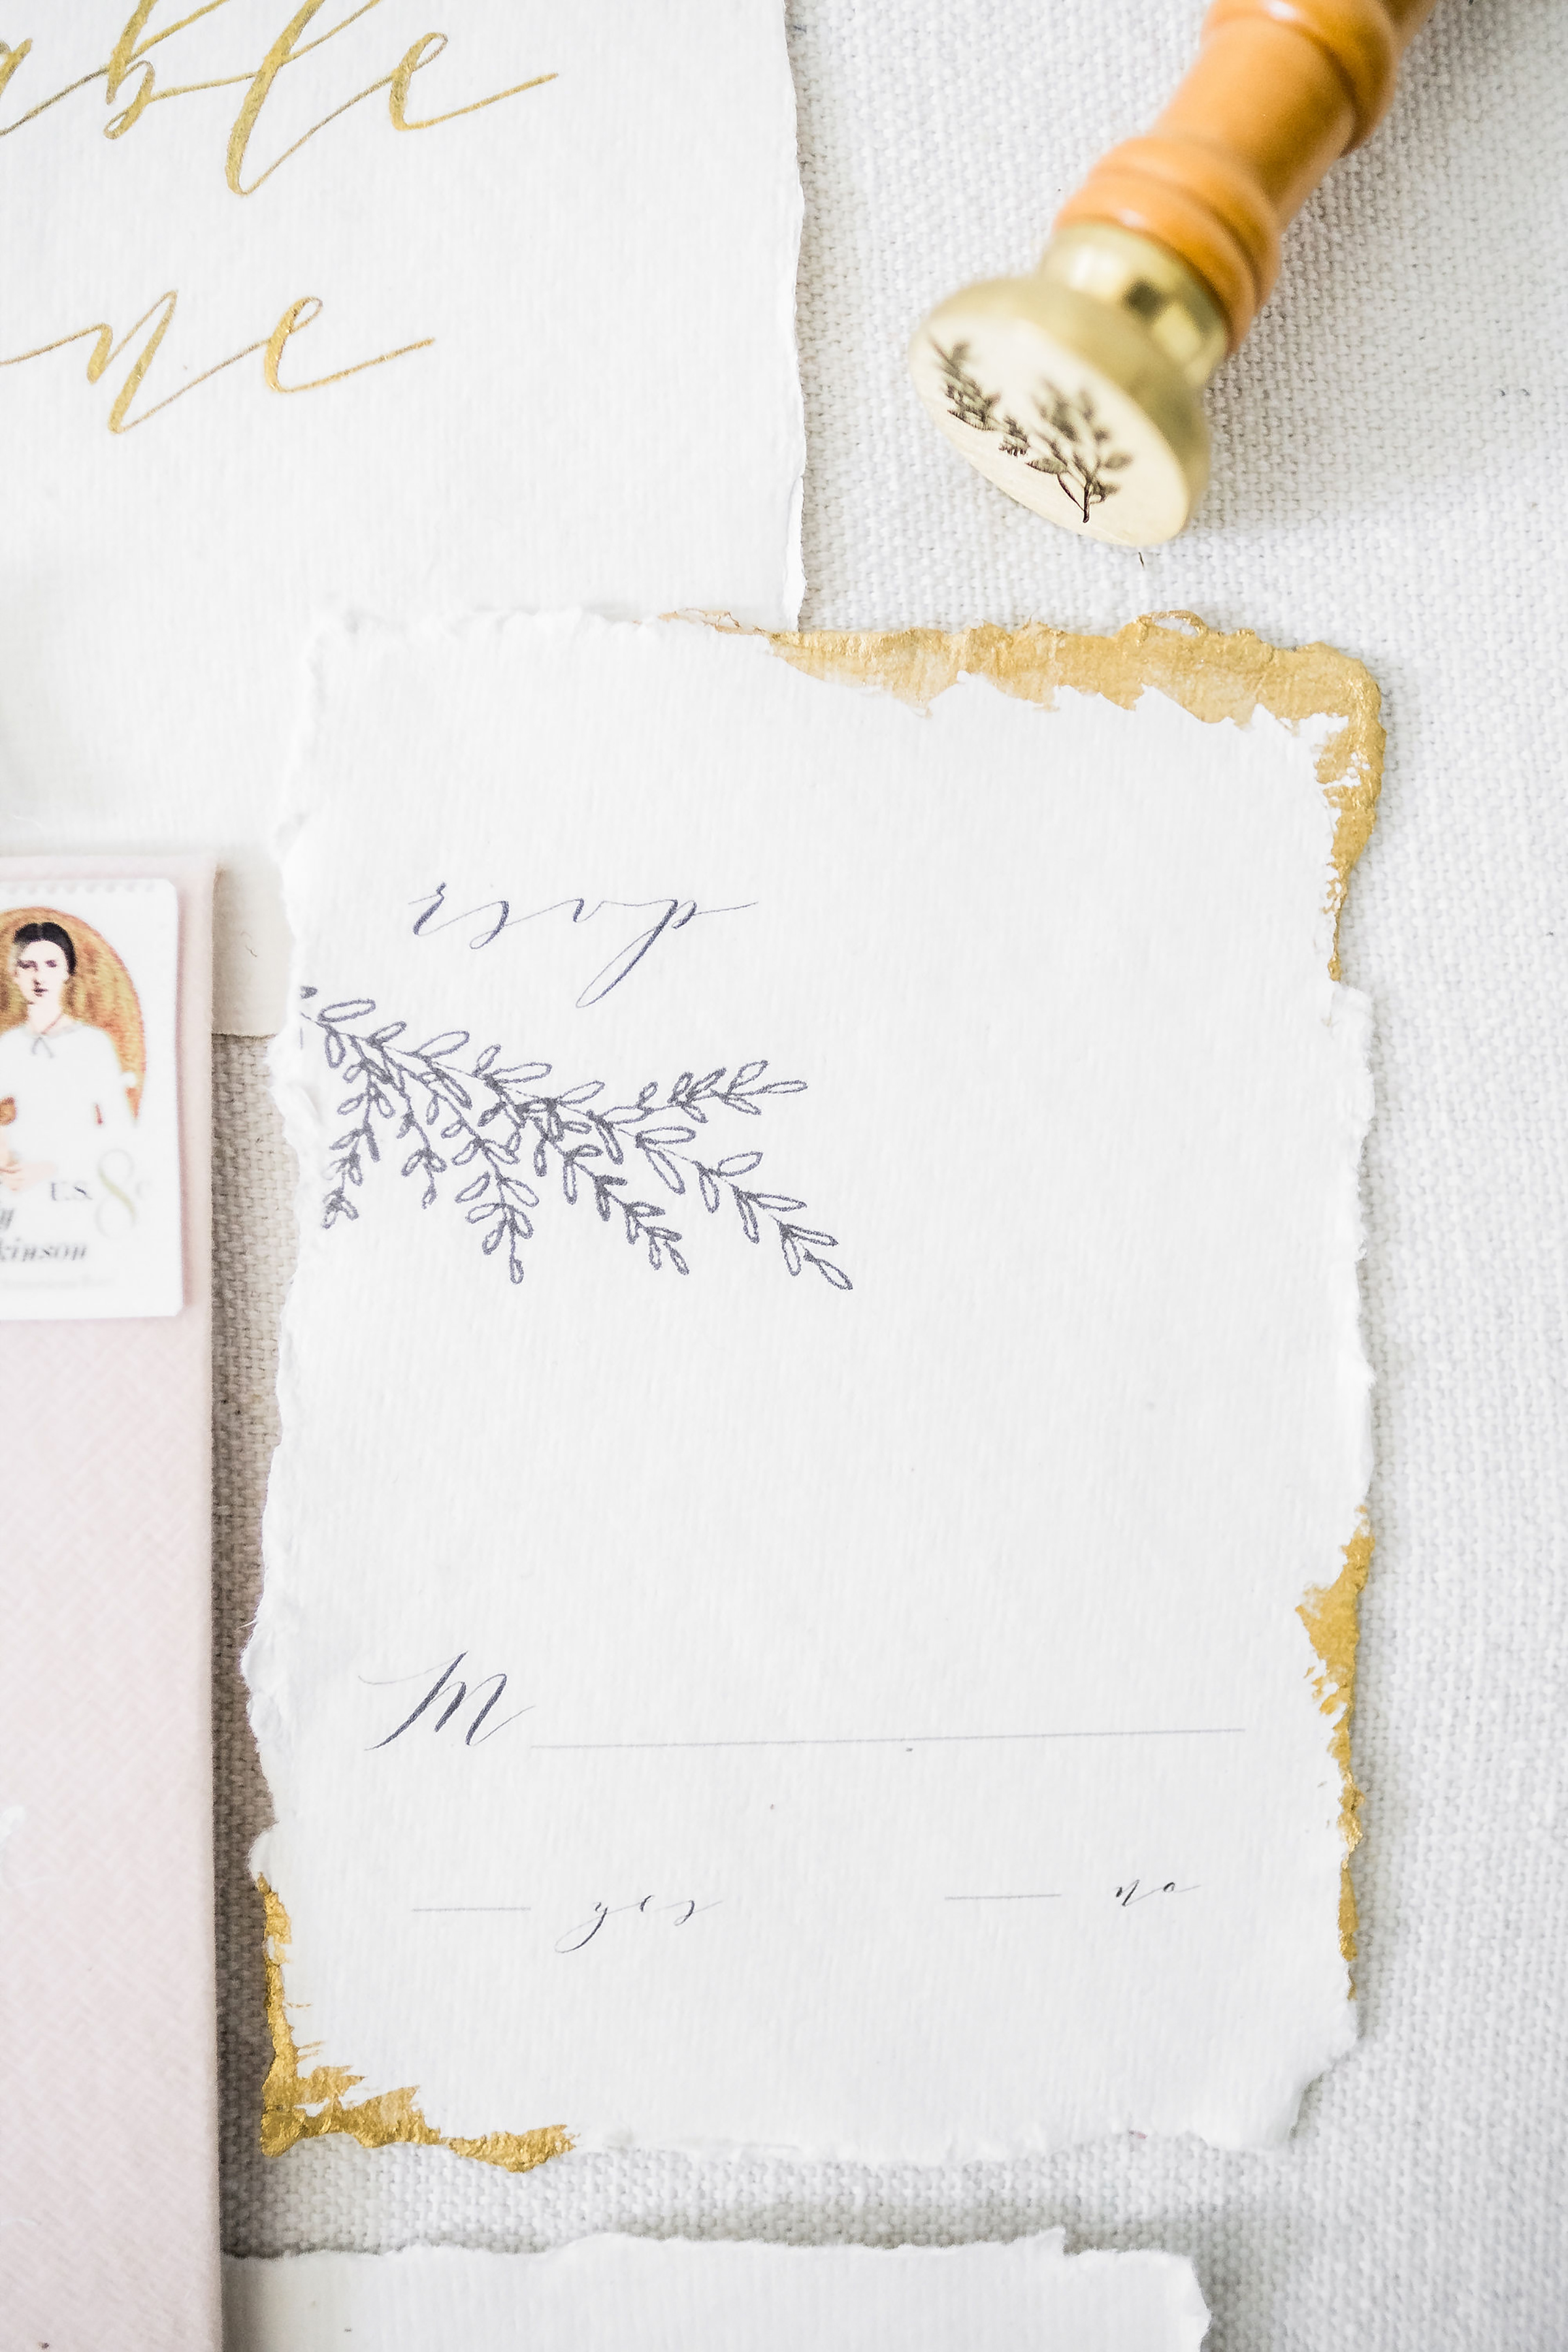 Paper by  Indian Cotton Paper Co. , wax stamp by  Artisaire , stationery design and photography by  Claire Falco Creative